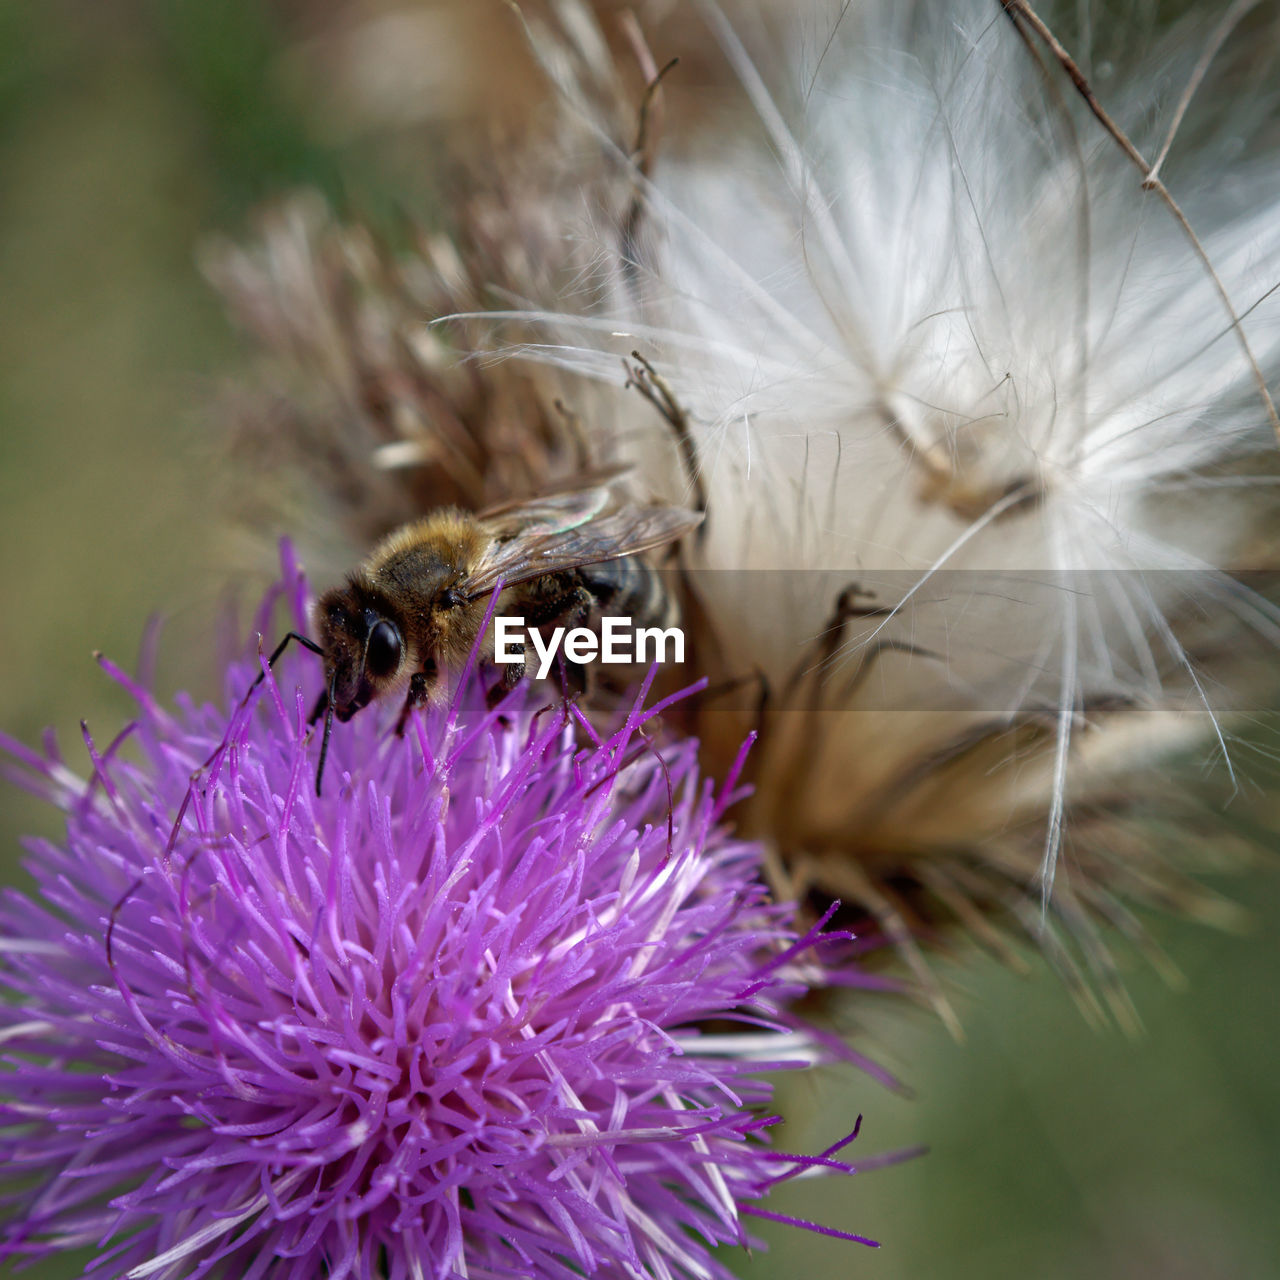 flowering plant, flower, invertebrate, insect, fragility, animals in the wild, vulnerability, animal themes, freshness, beauty in nature, animal wildlife, flower head, plant, animal, petal, one animal, growth, close-up, bee, inflorescence, pollination, purple, no people, outdoors, pollen, bumblebee